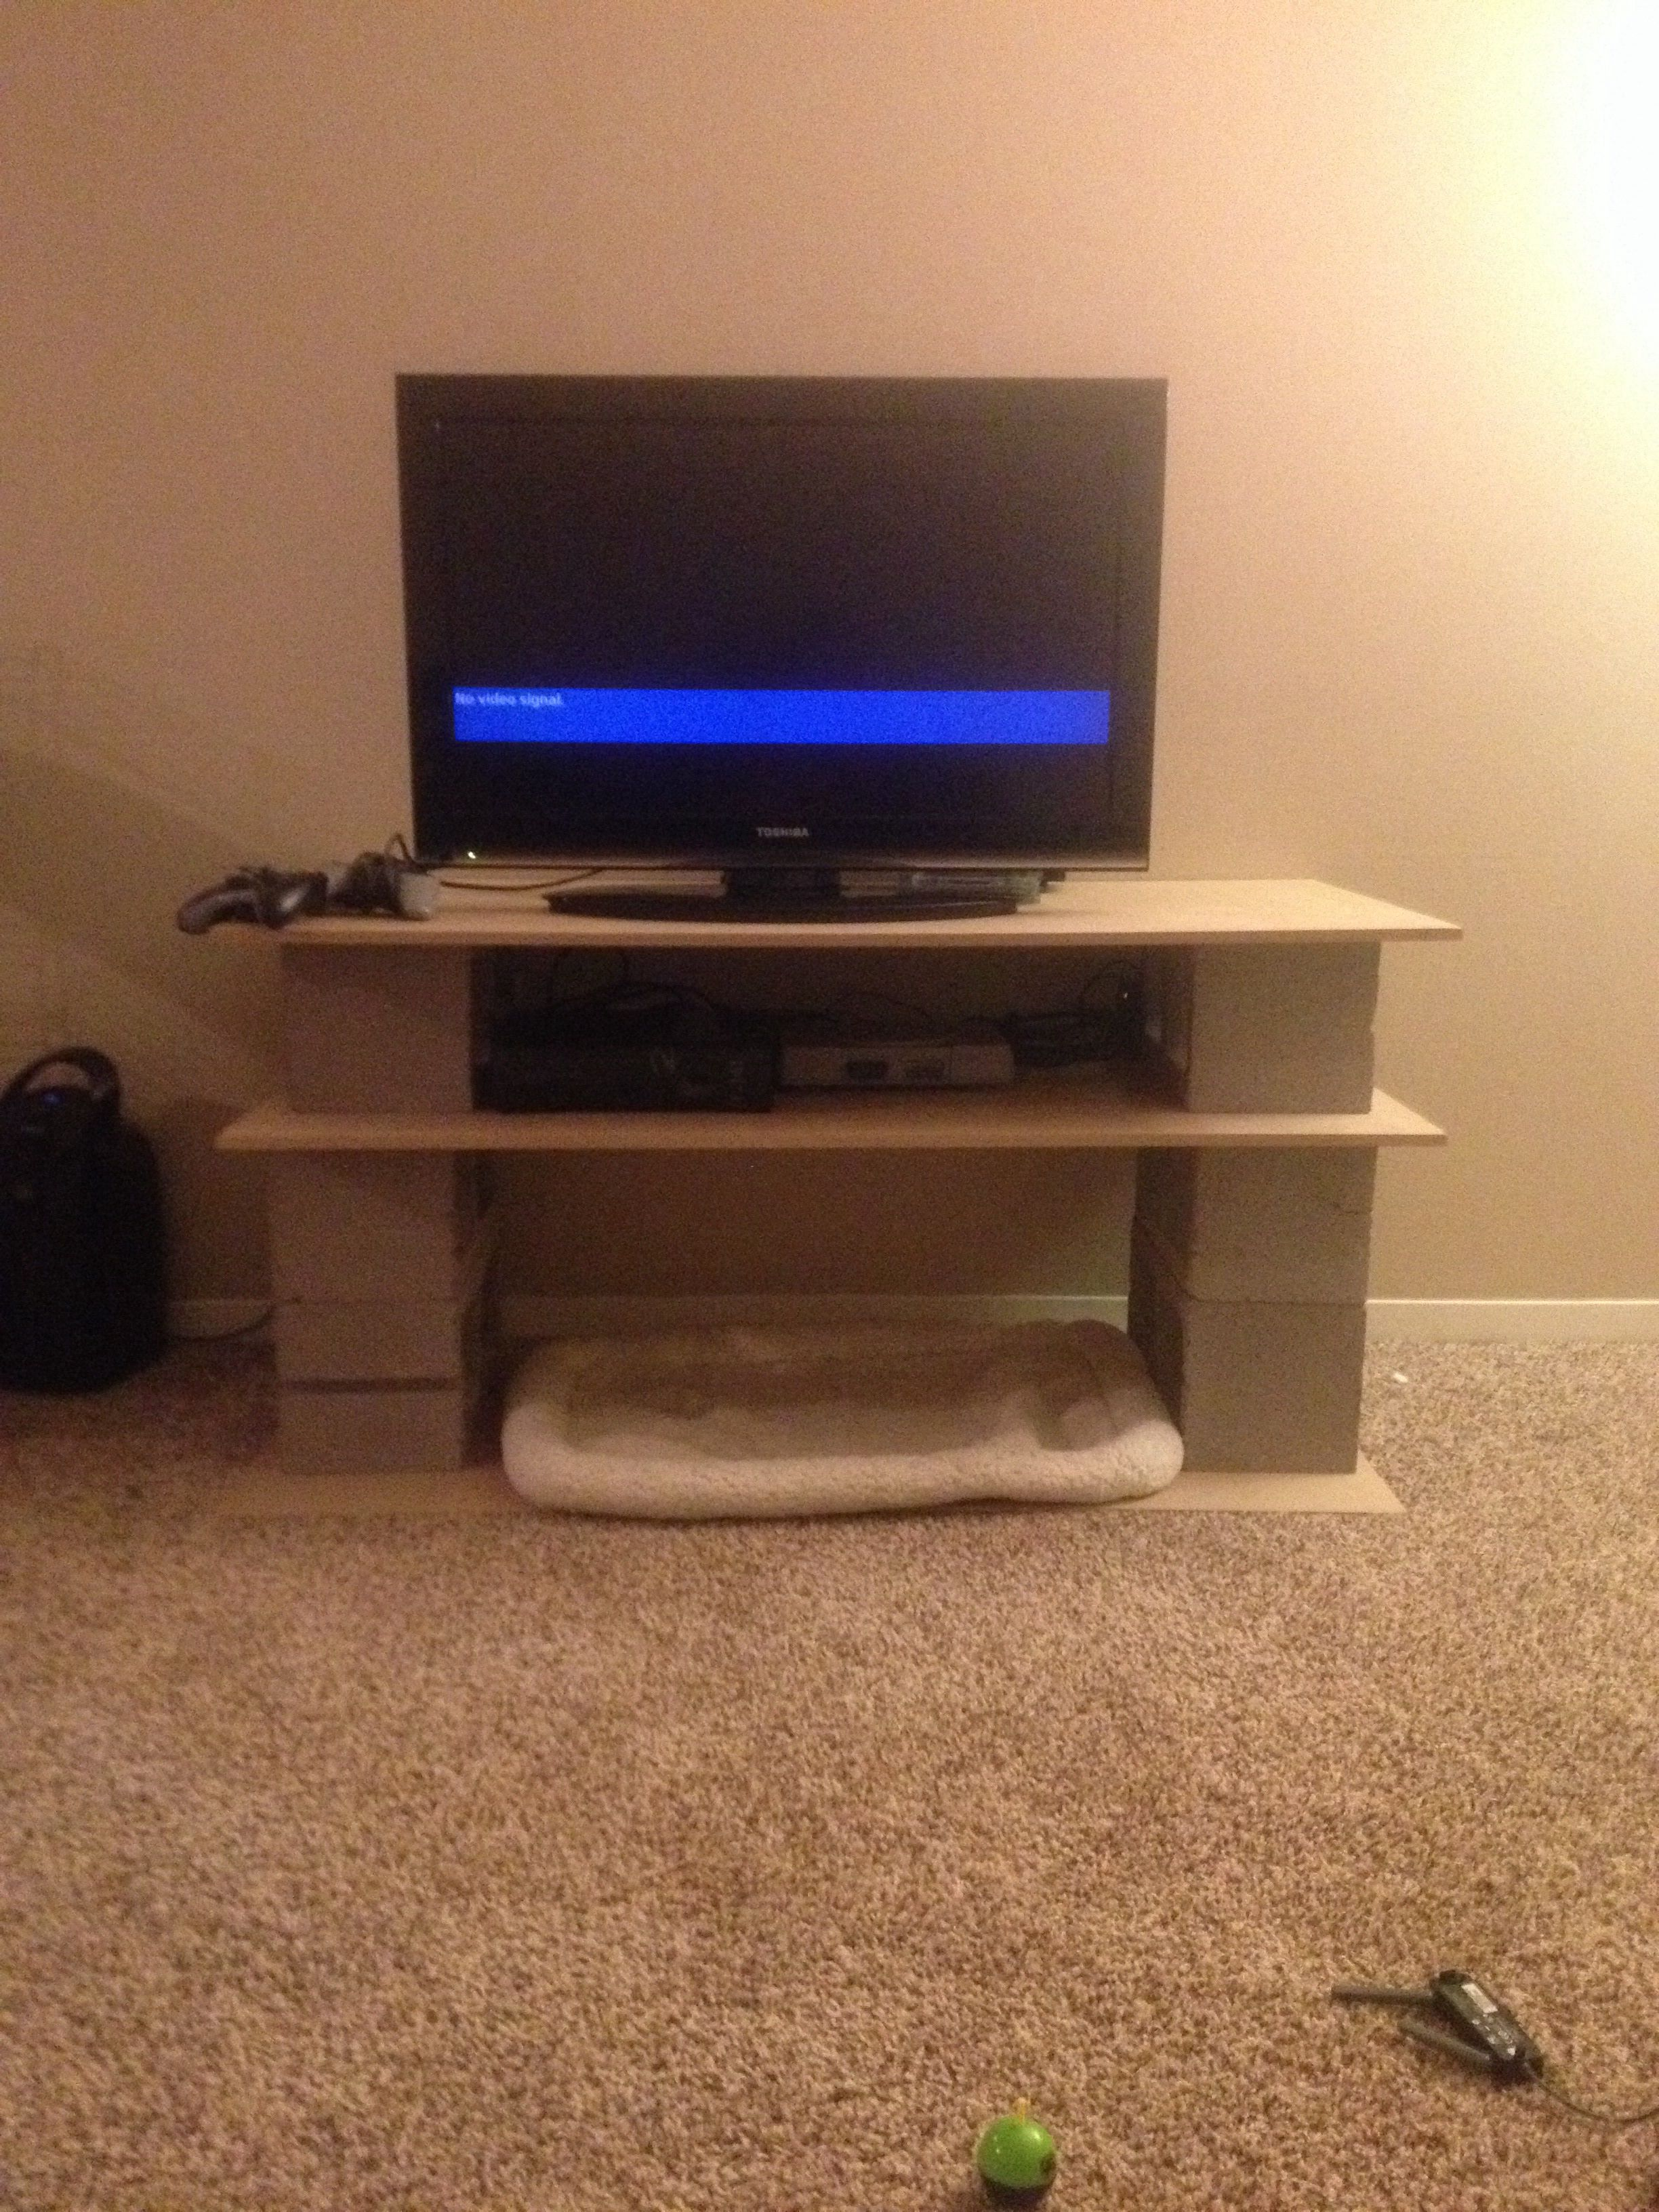 Diy Tv Stand Made Outta Cinder Blocks And Wooden Board